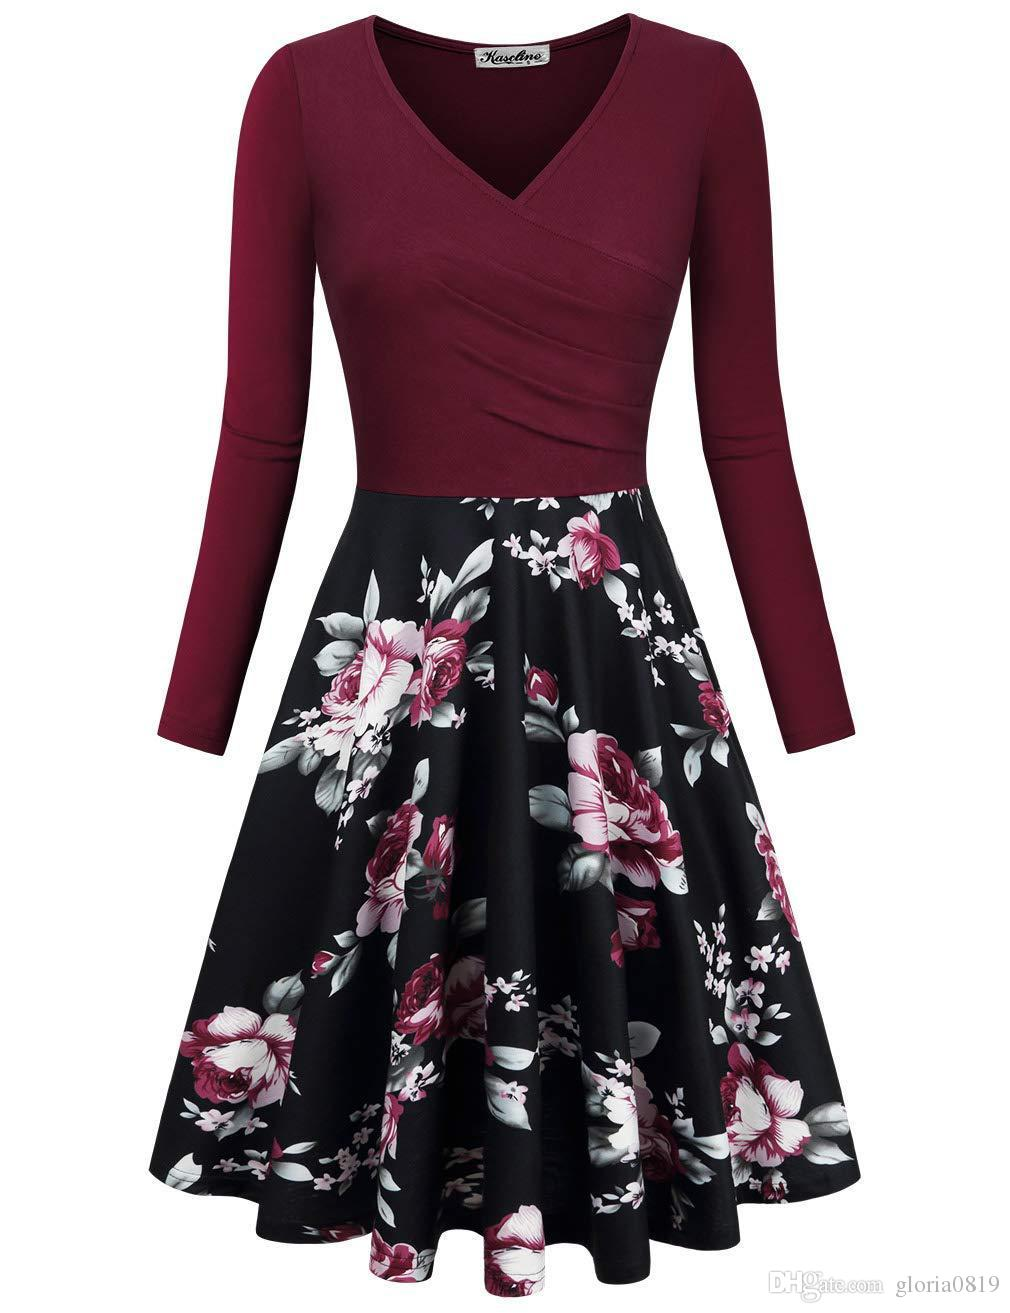 1c548639c884 2019 Long Sleeves Party Dresses V Neck Pleats Knee Length Floral Printed  Patchwork Casual Skater Dresses Available For Burgundy Purple Black Blue  From ...